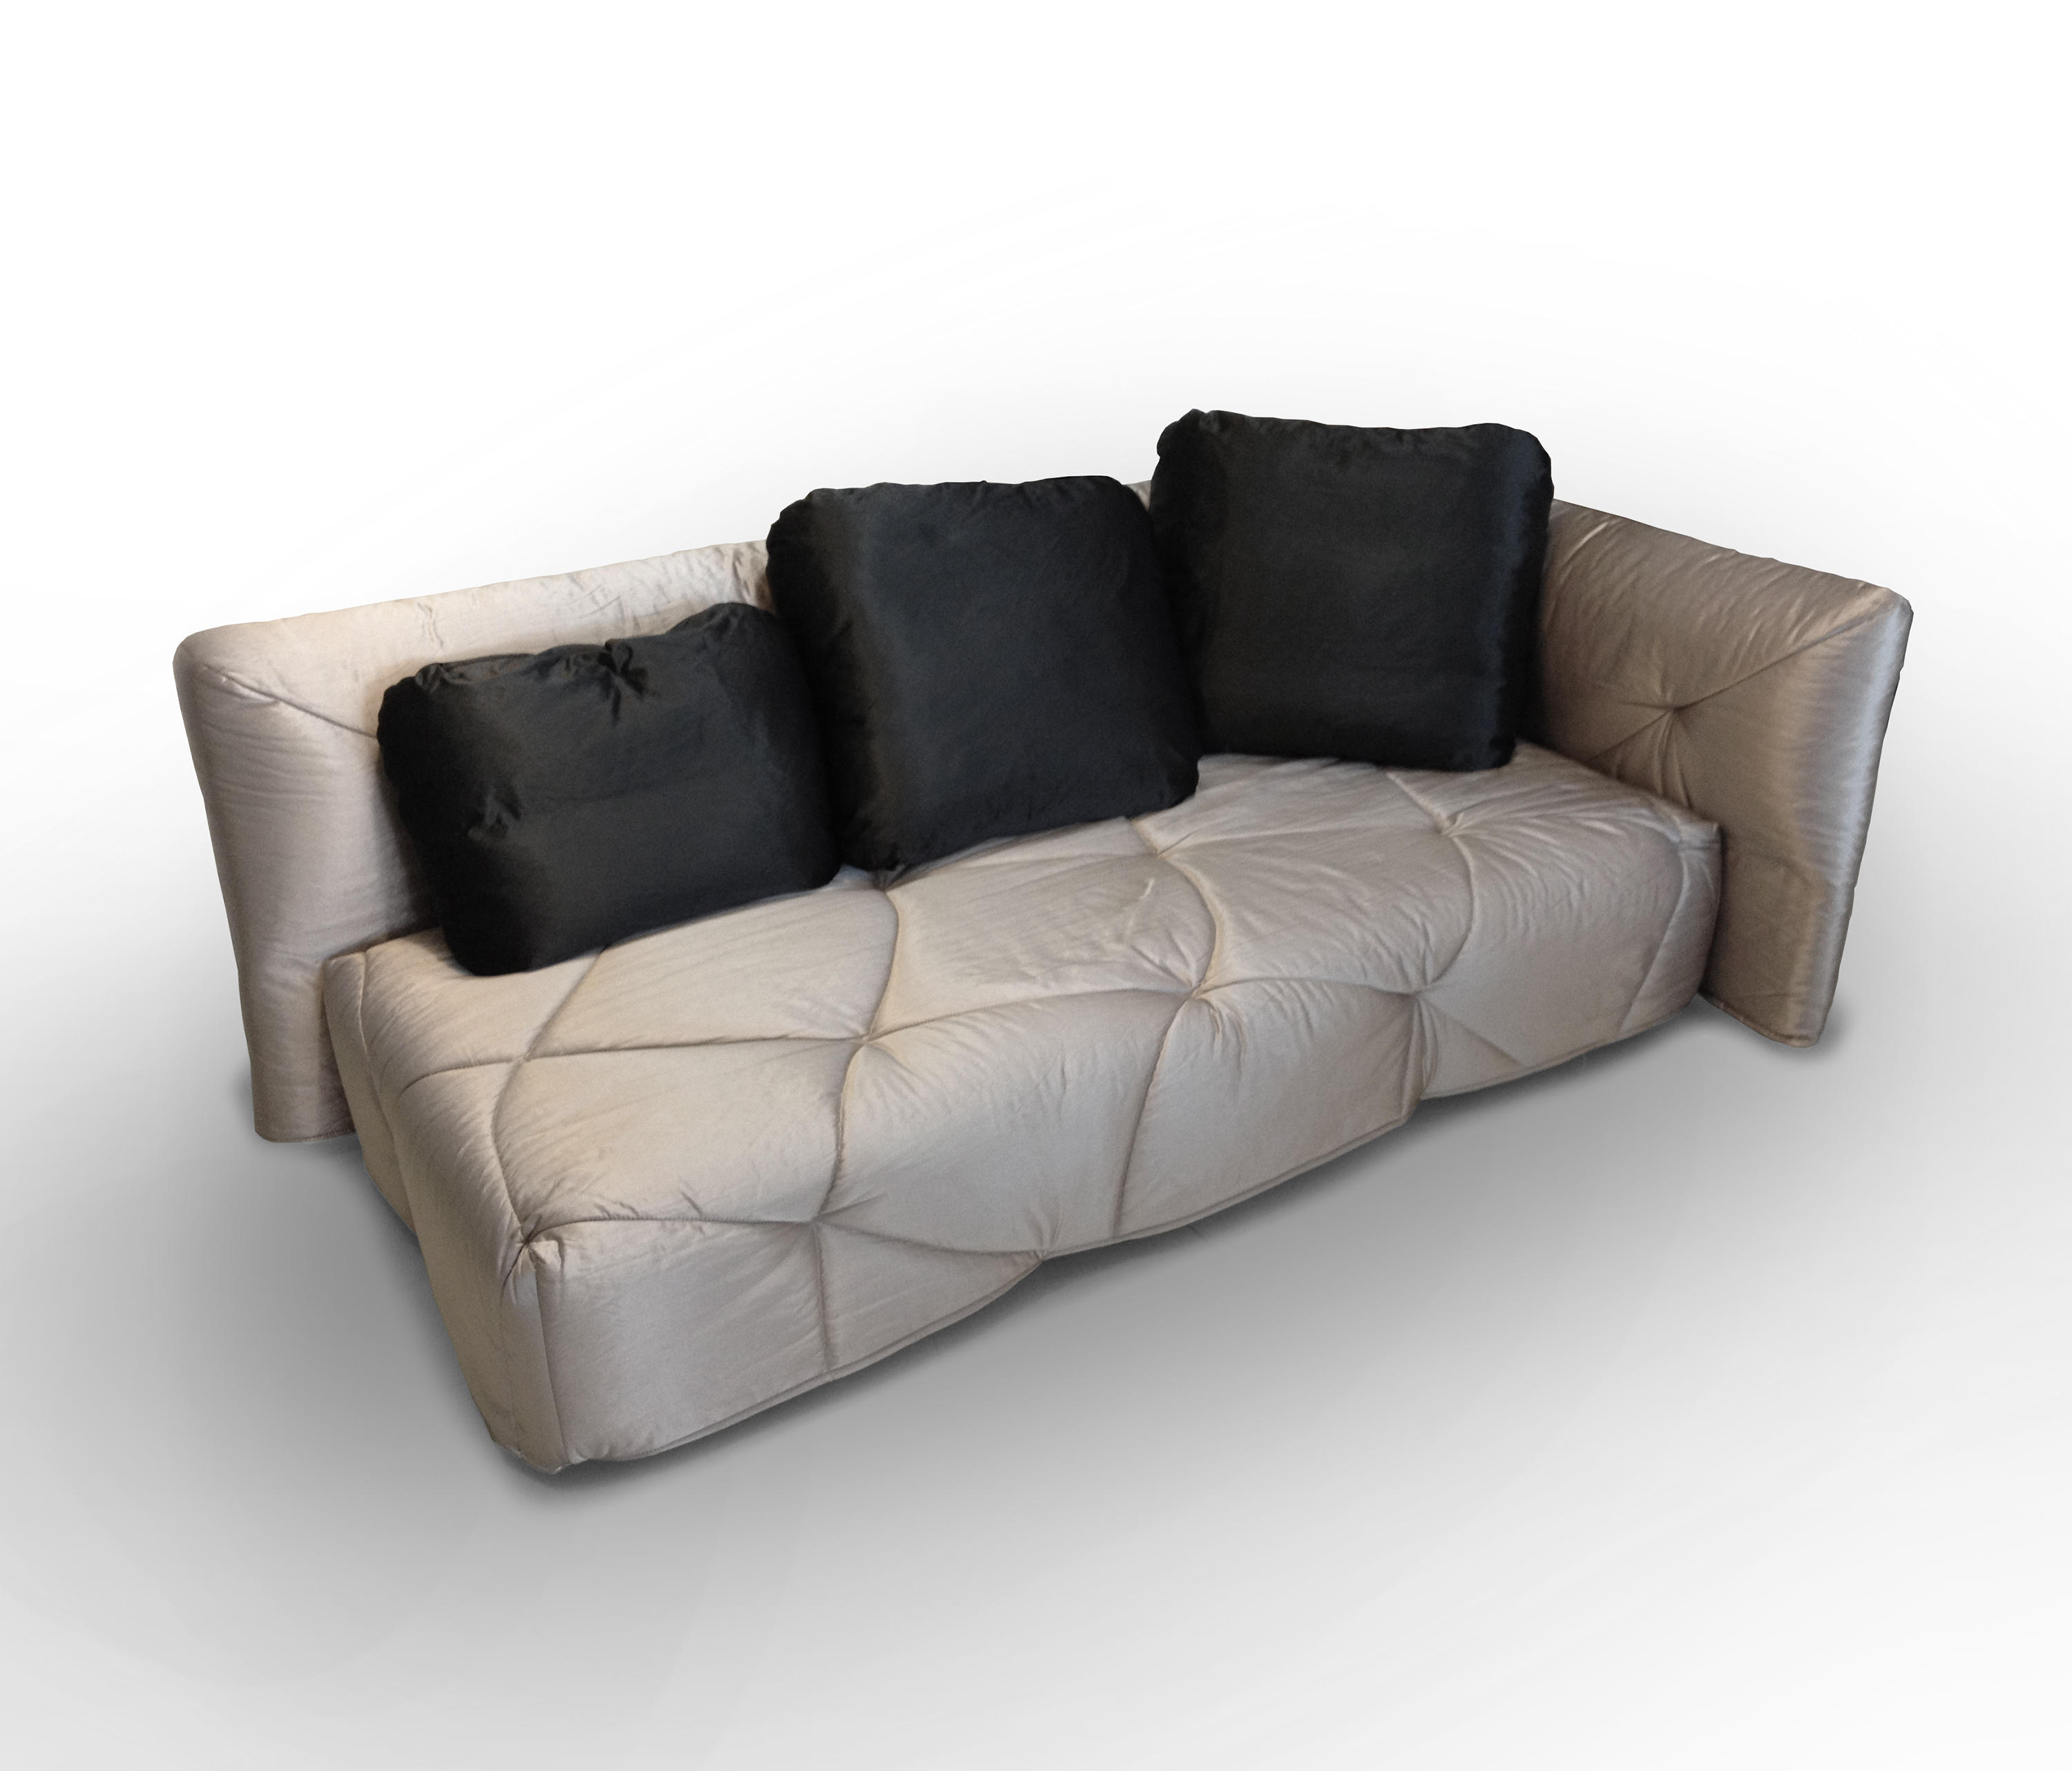 Bedbed single schlafsofas von design you edit architonic for 4 inside schlafsofa